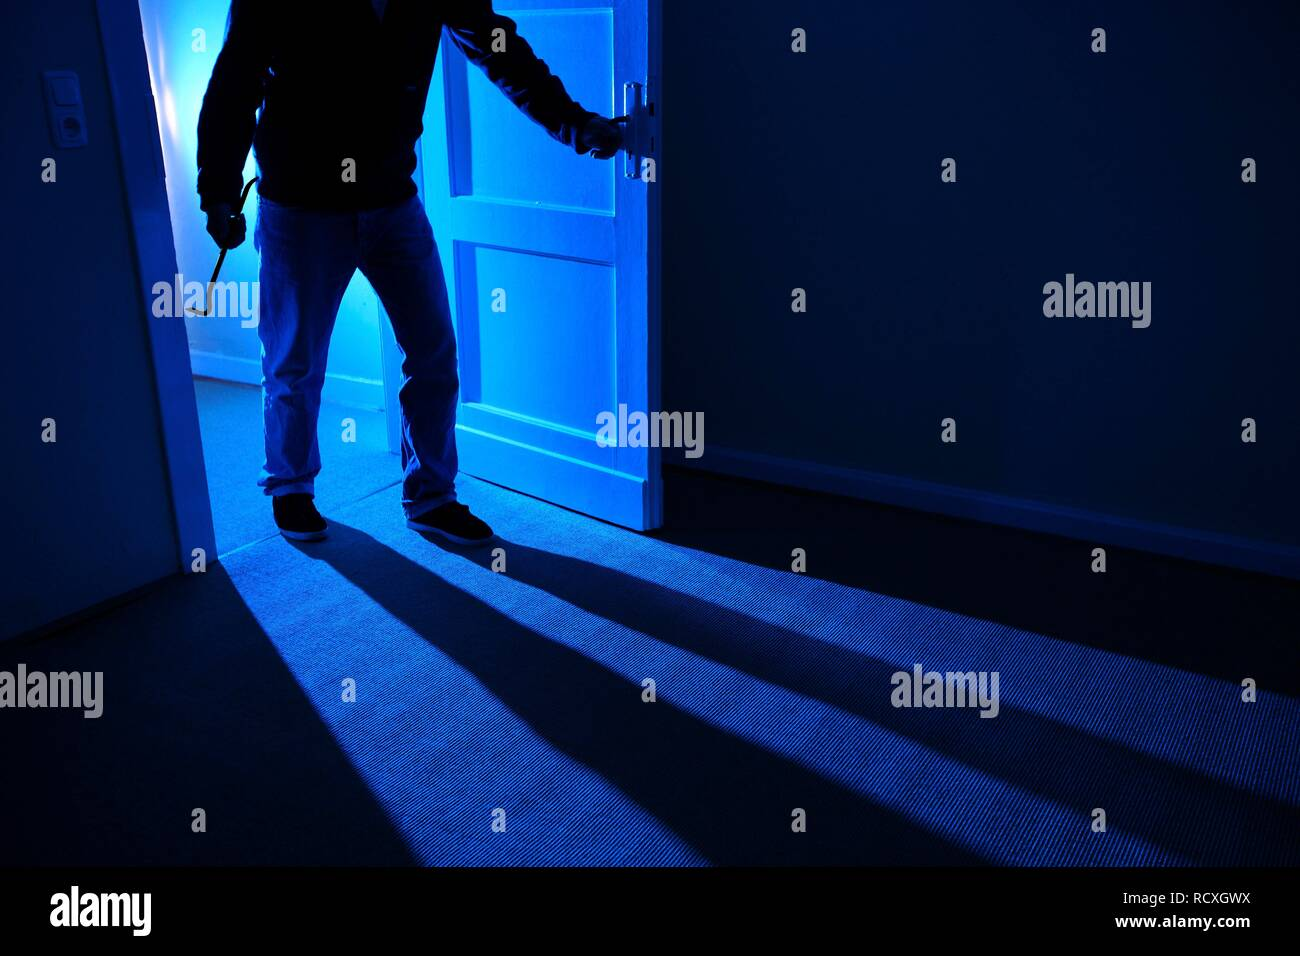 Burglar breaks open the front door and enters the apartment, symbolic image for domestic burglary - Stock Image